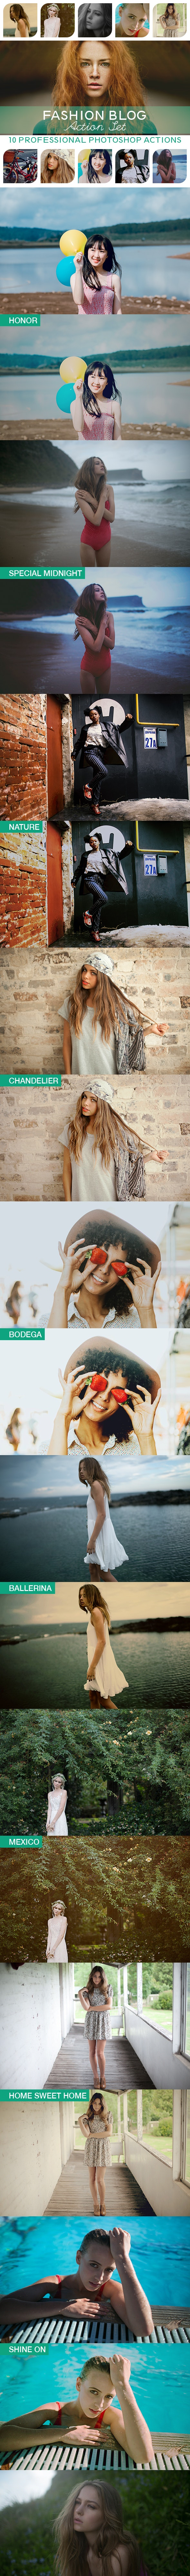 10 PRO Photoshop Actions Vol.I - Photo Effects Actions